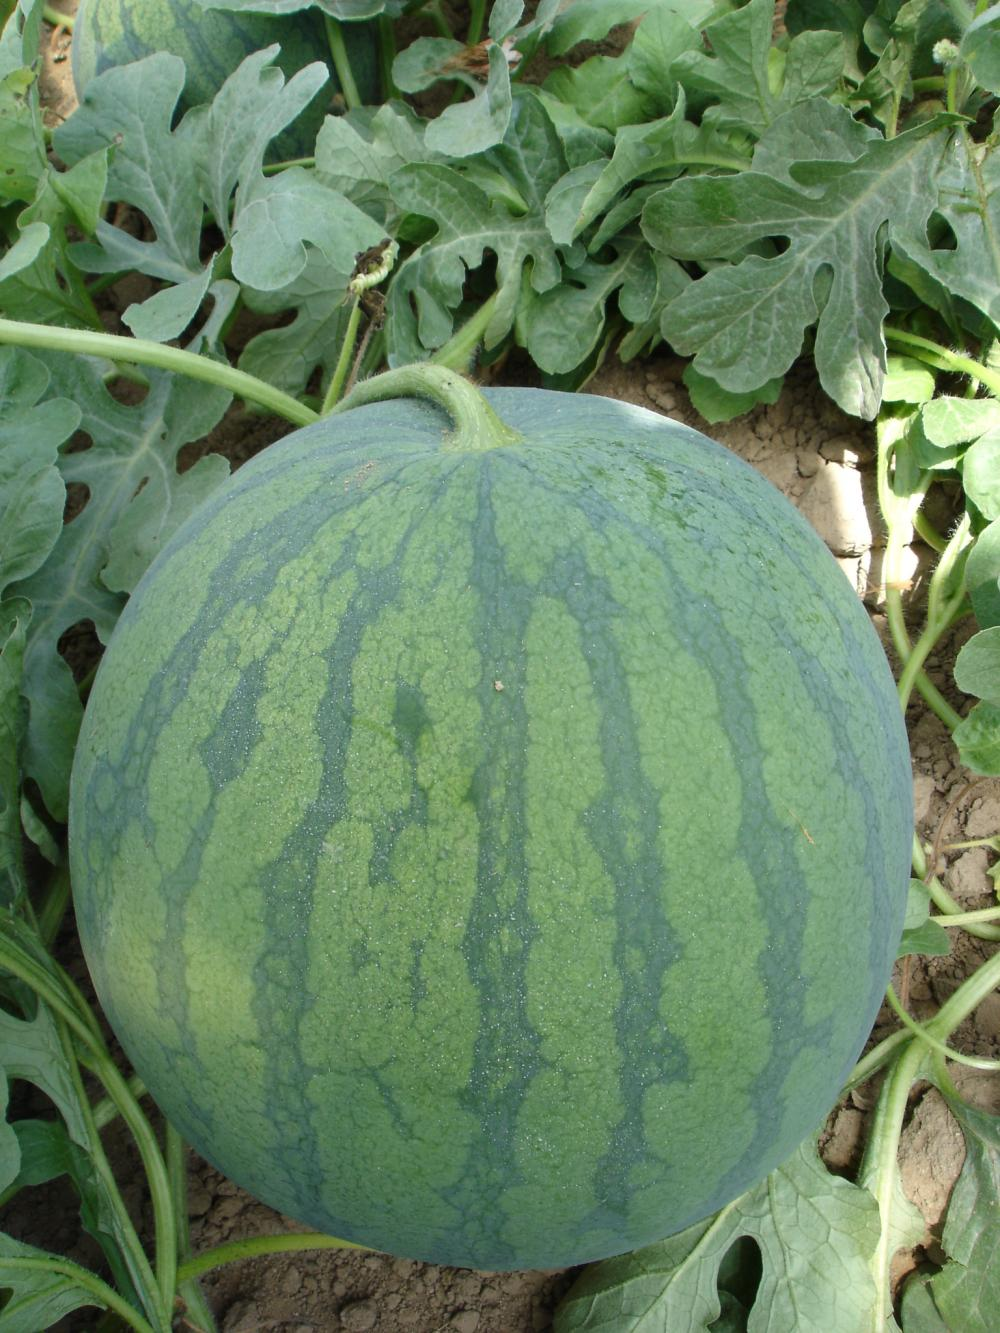 Seedless Watermelon Seeds for Planting